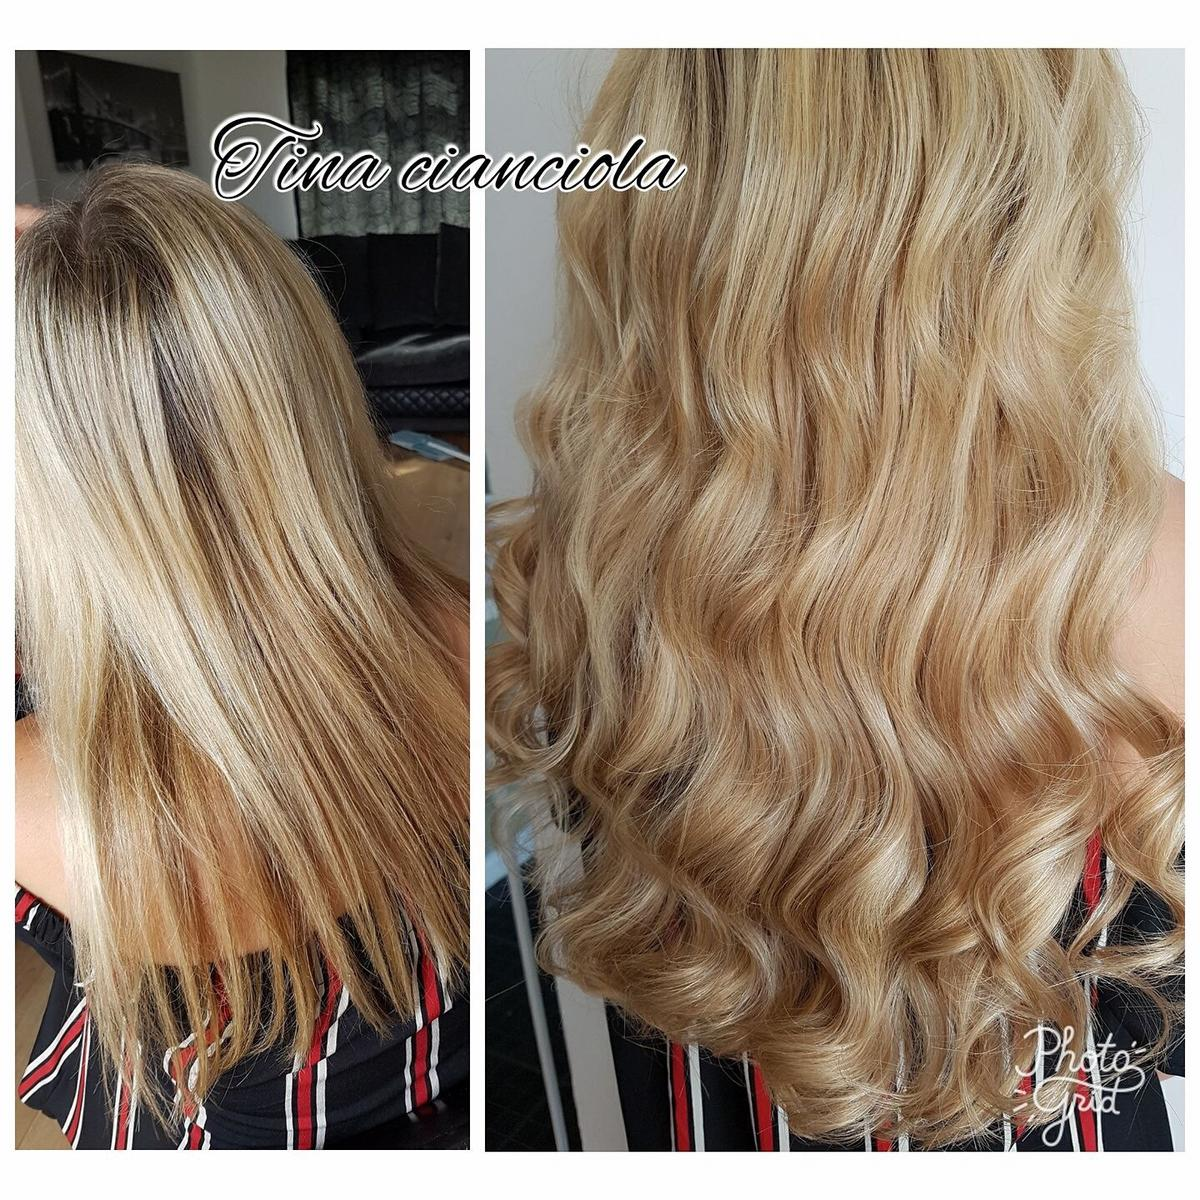 Hair Extensions In Braintree For 200 00 For Sale Shpock